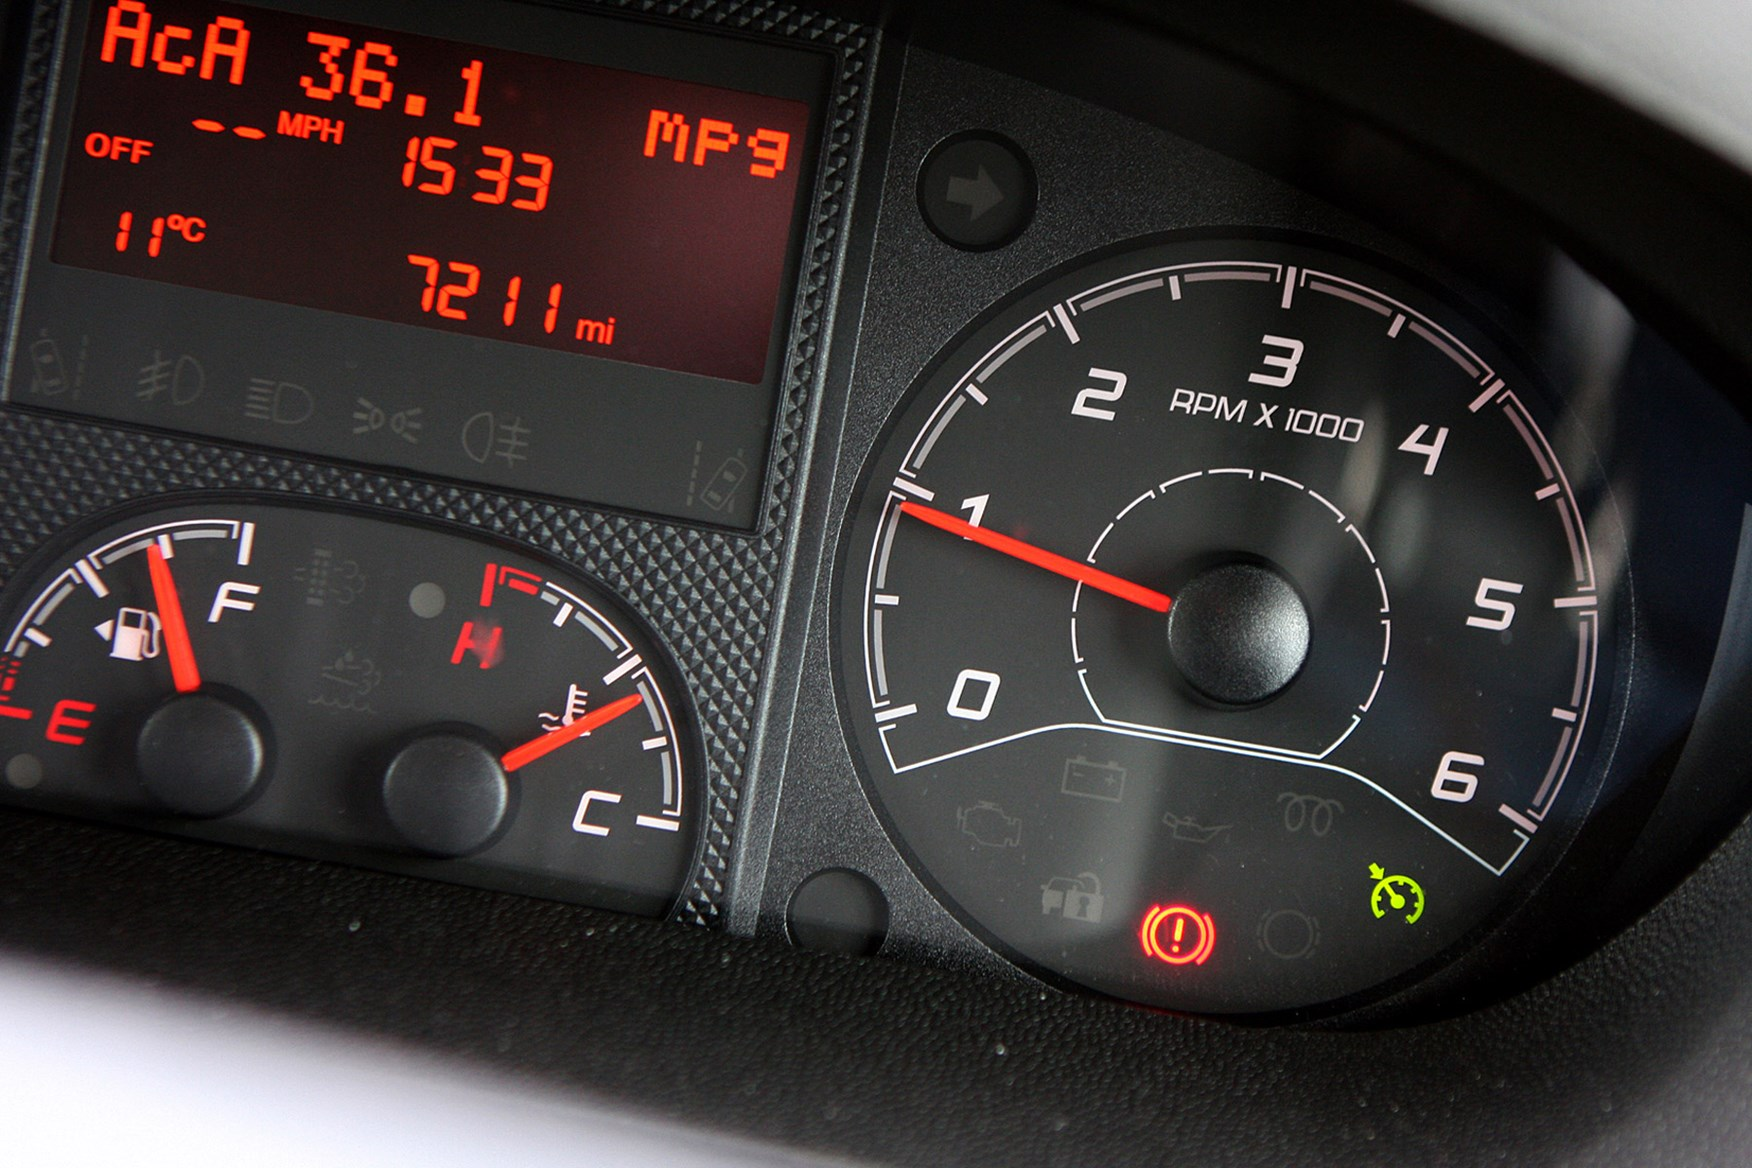 Citroen Relay review - dials showing mpg